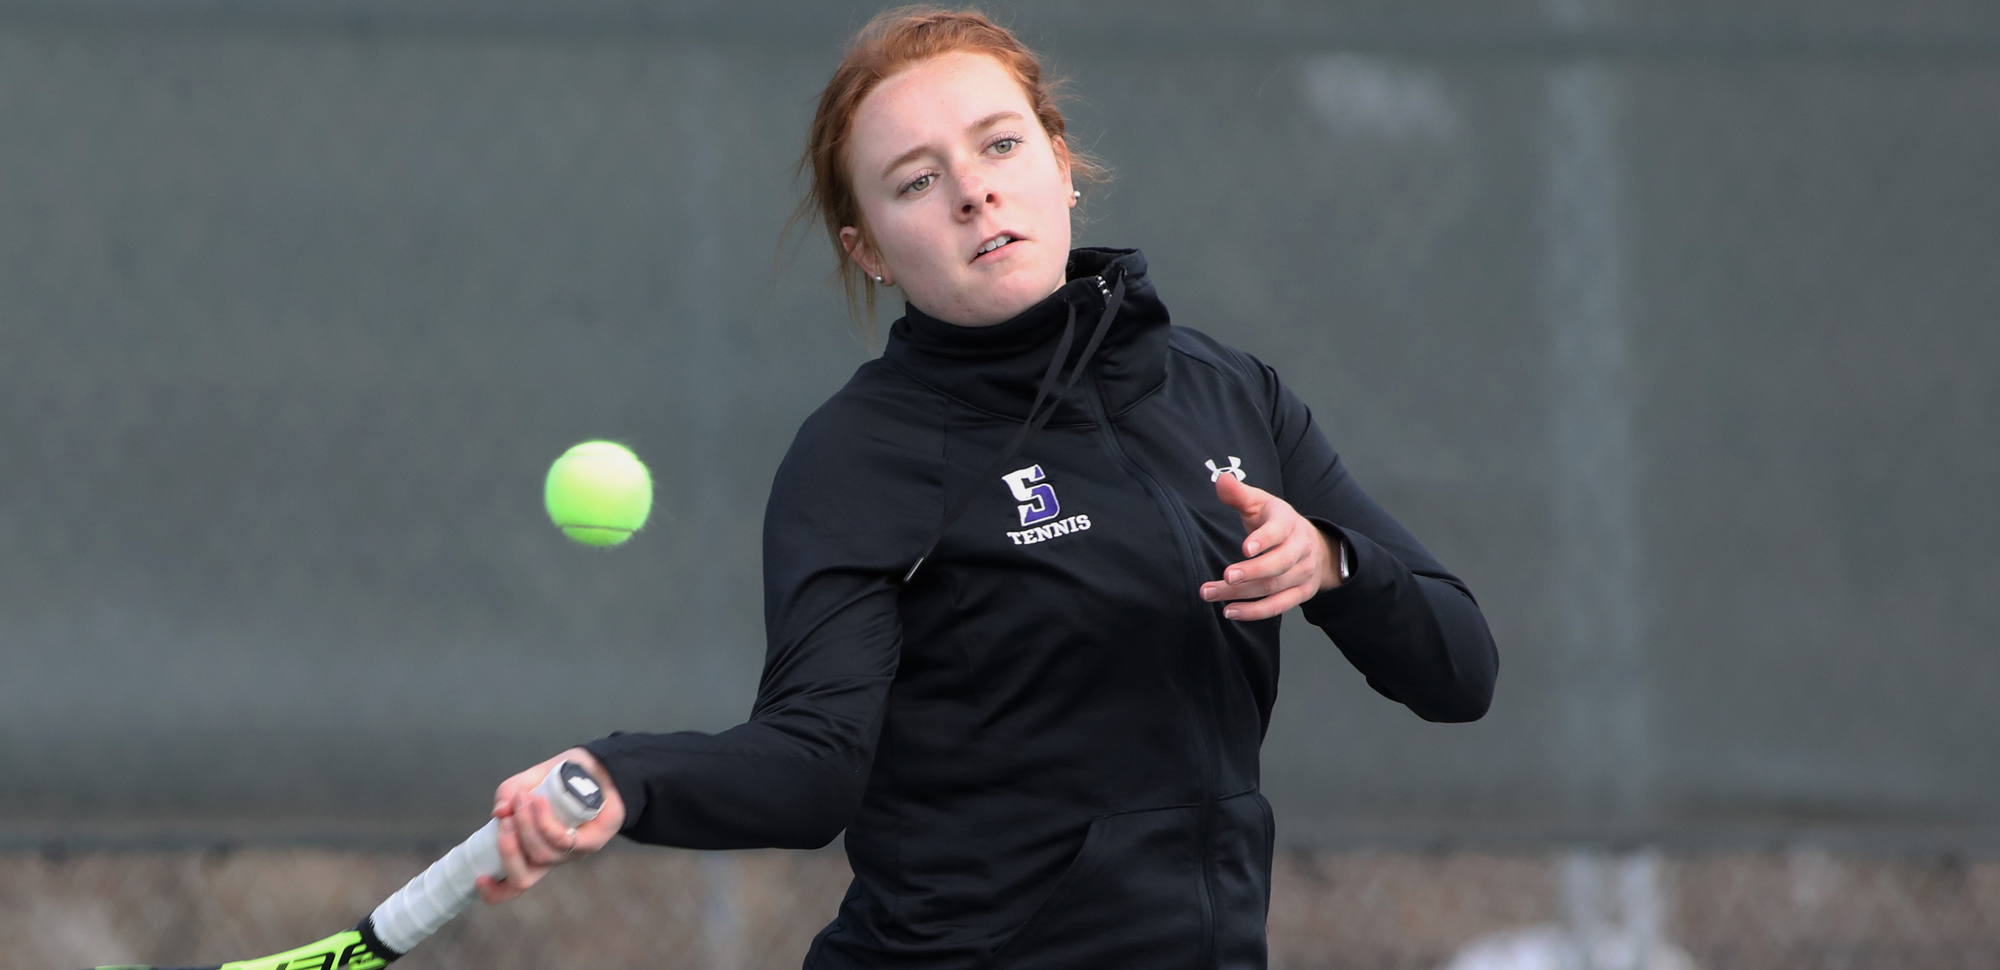 Junior Emily Kelly won at both doubles and singles to help the Royals take a 7-2 win at Elizabethtown on Sunday. © Photo by Timothy R. Dougherty / doubleeaglephotography.com